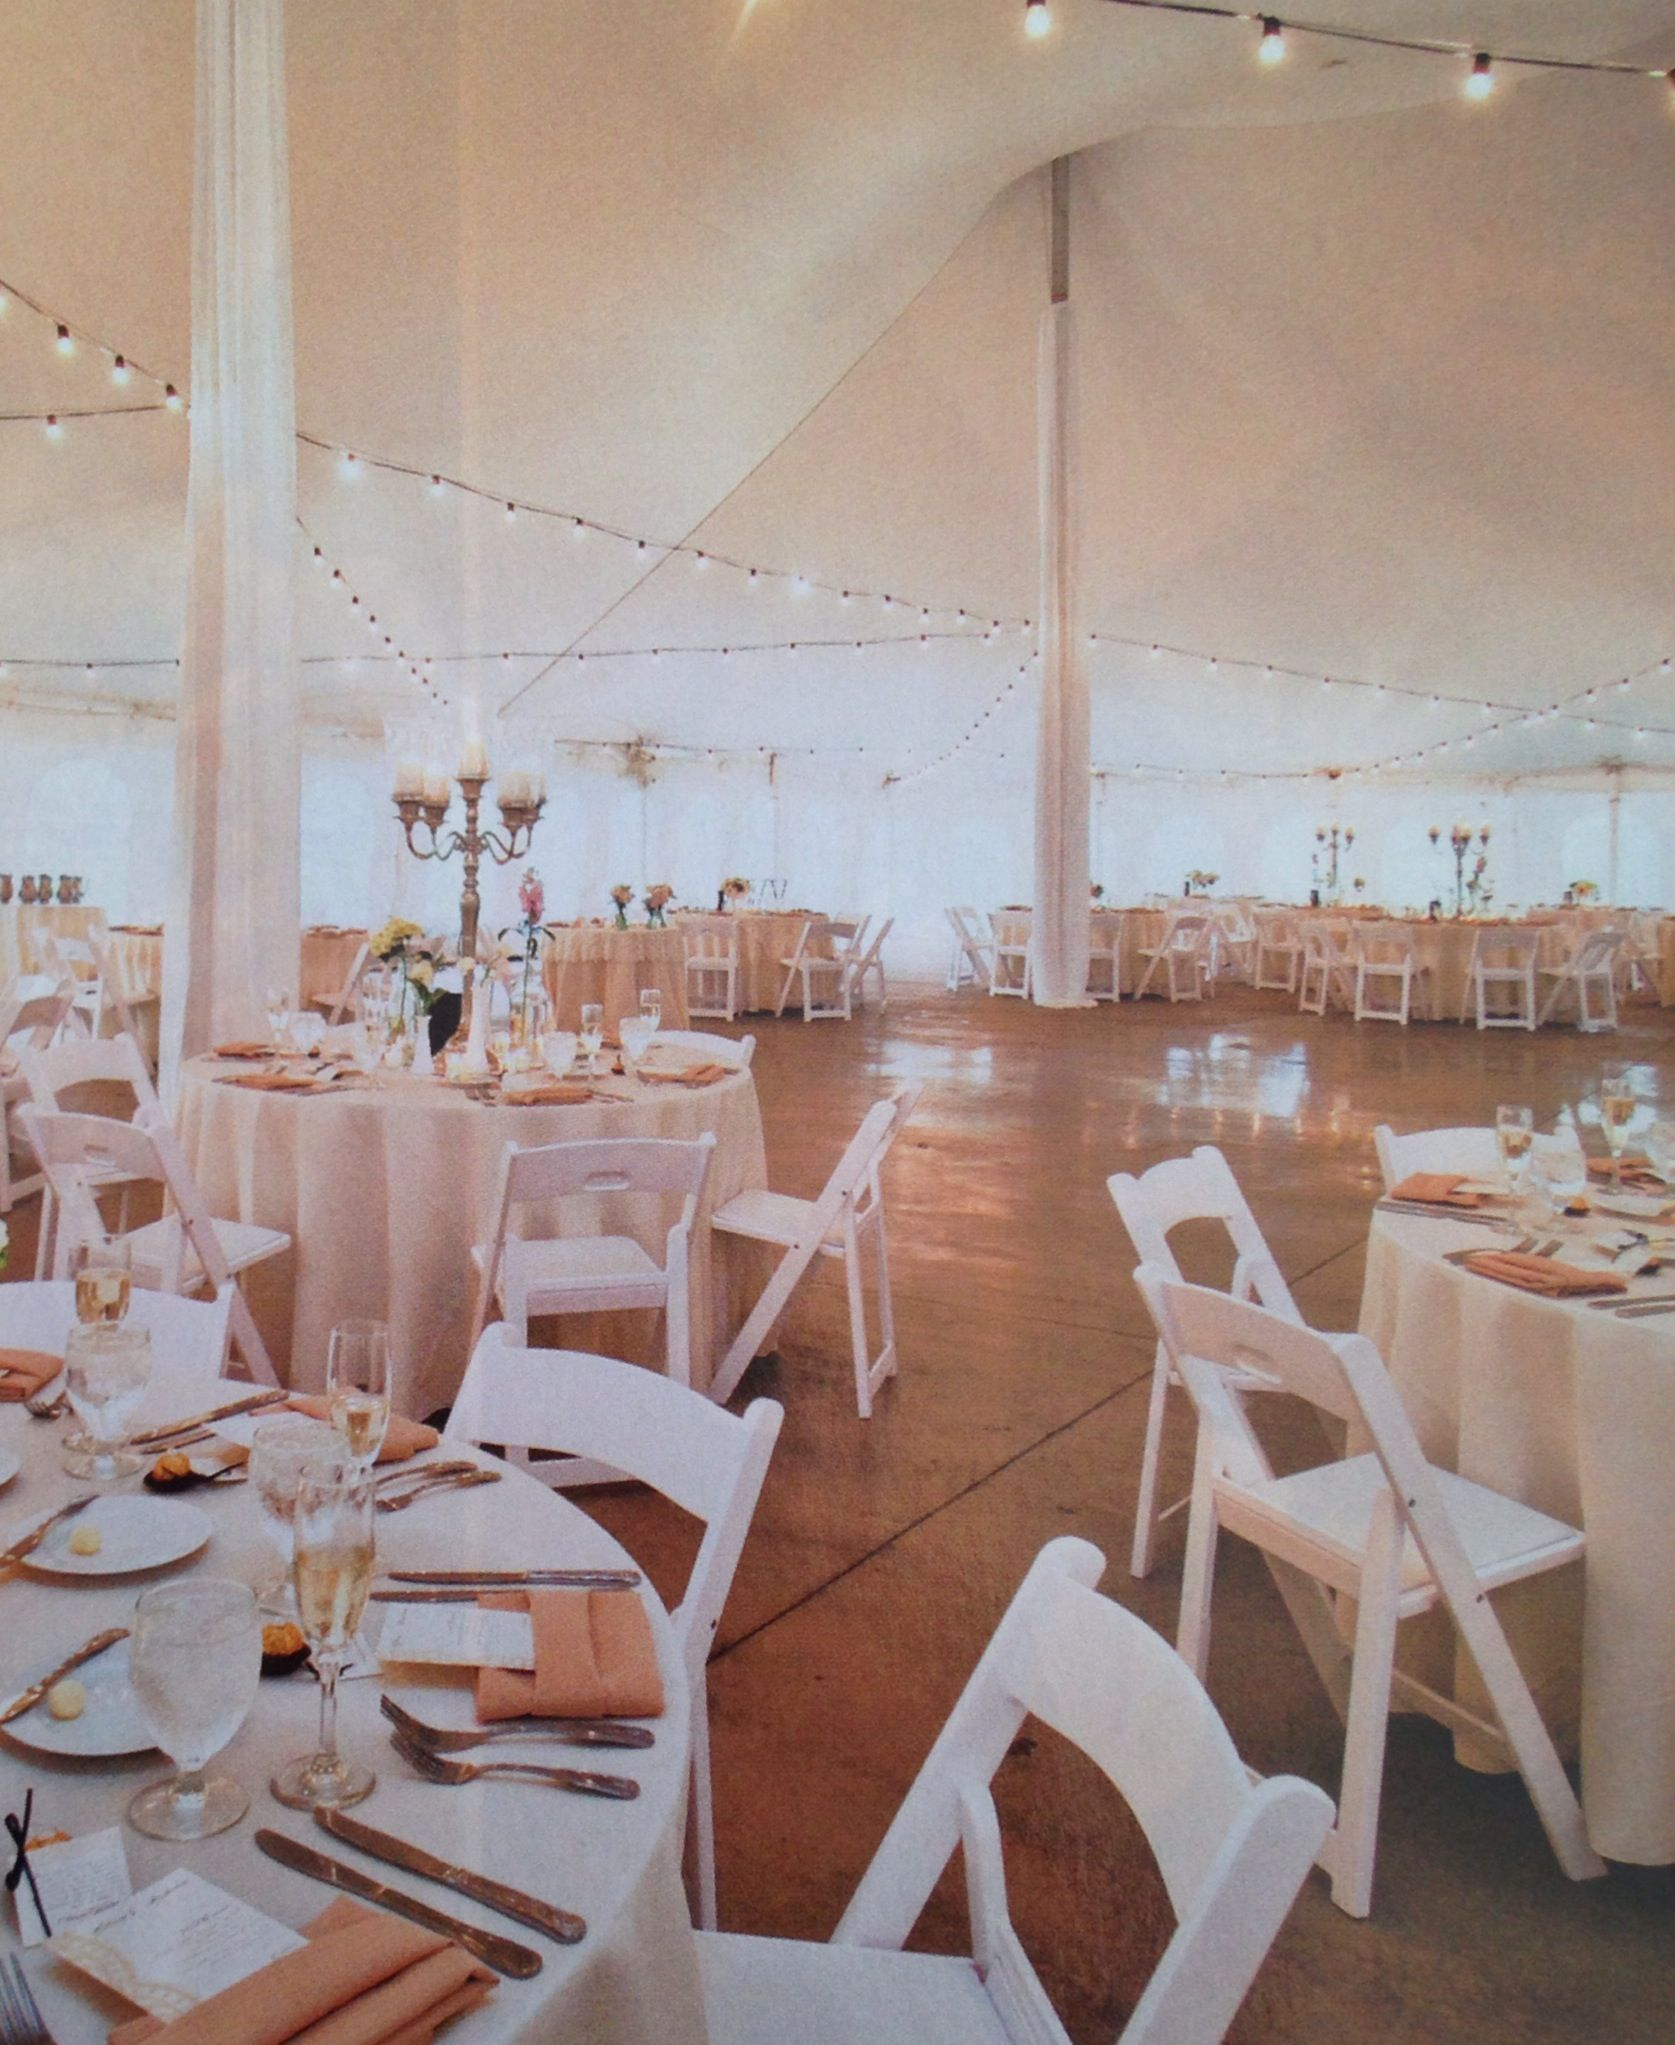 Ivory Tablecloths Beige Napkins And White Garden Chairs Color Scheme Will Go Well With The White Tented Terrace Garden Chairs White Chair Table Cloth